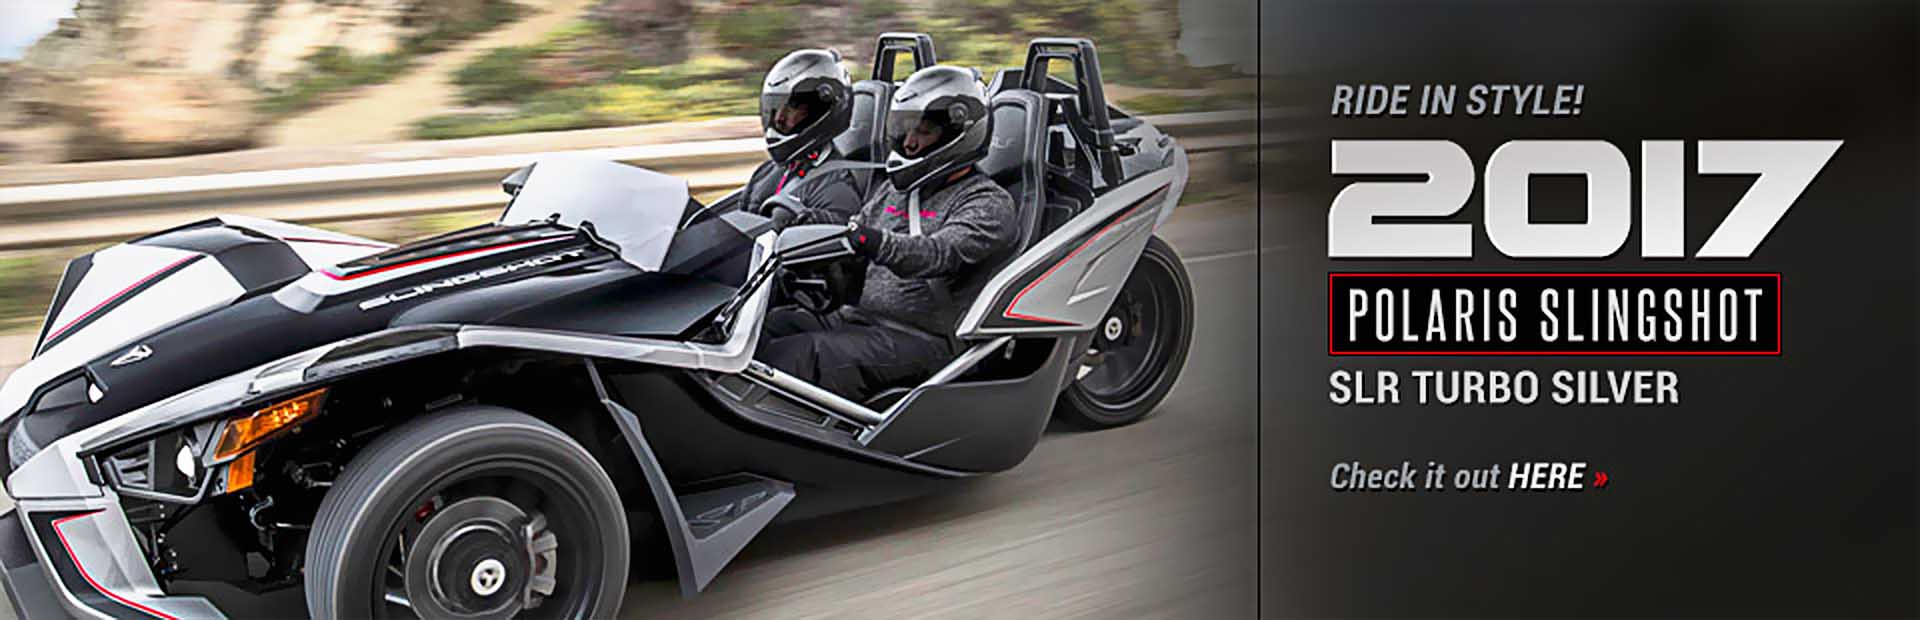 2017 Polaris Slingshot SLR Turbo Silver: Click here to view the model.